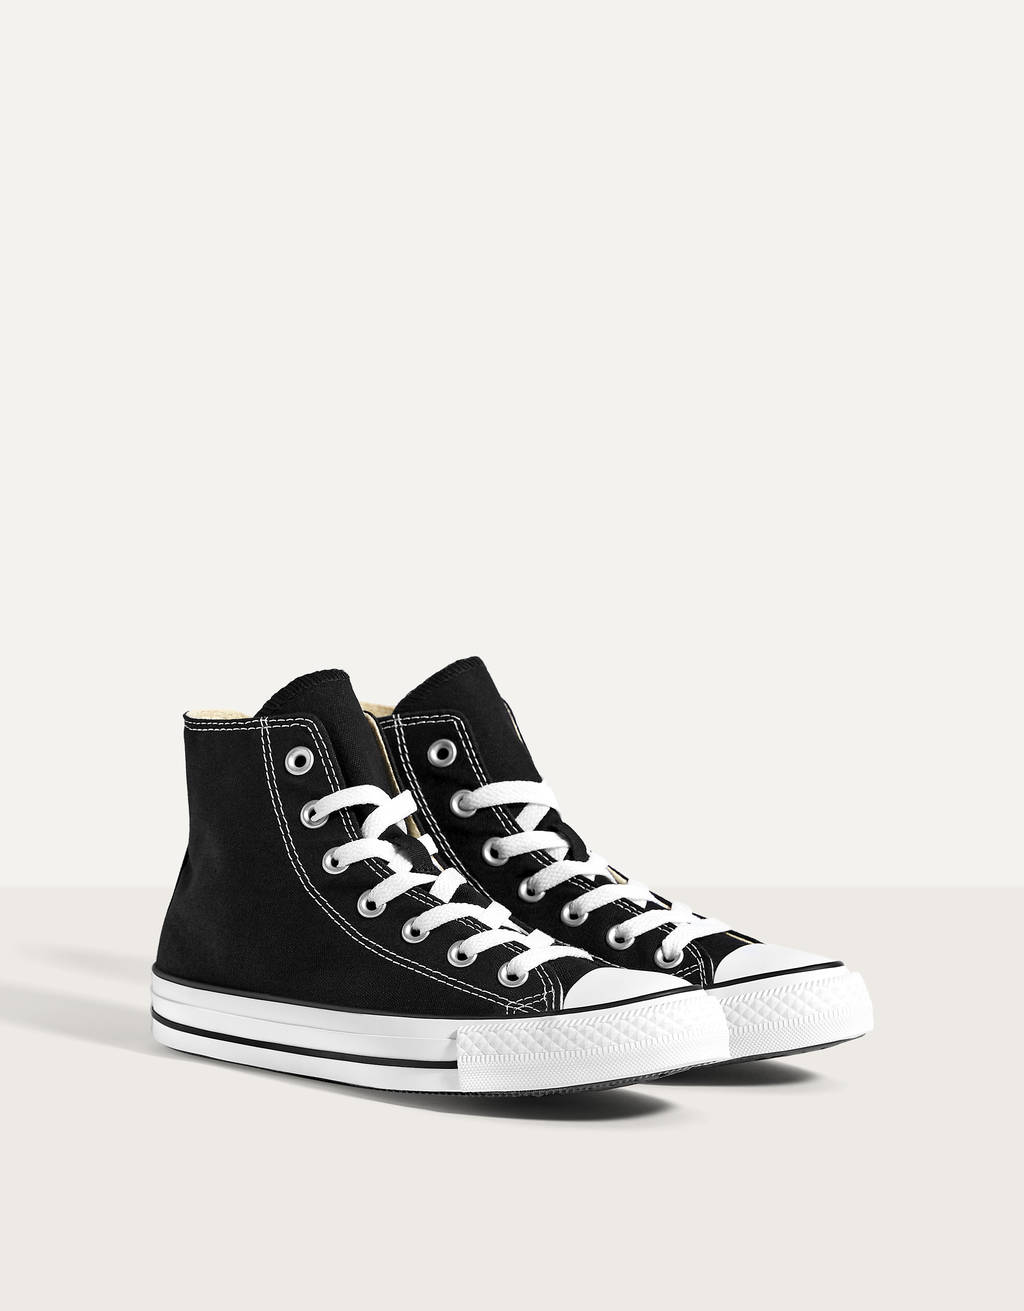 CONVERSE ALL STAR men's high top canvas sneakers